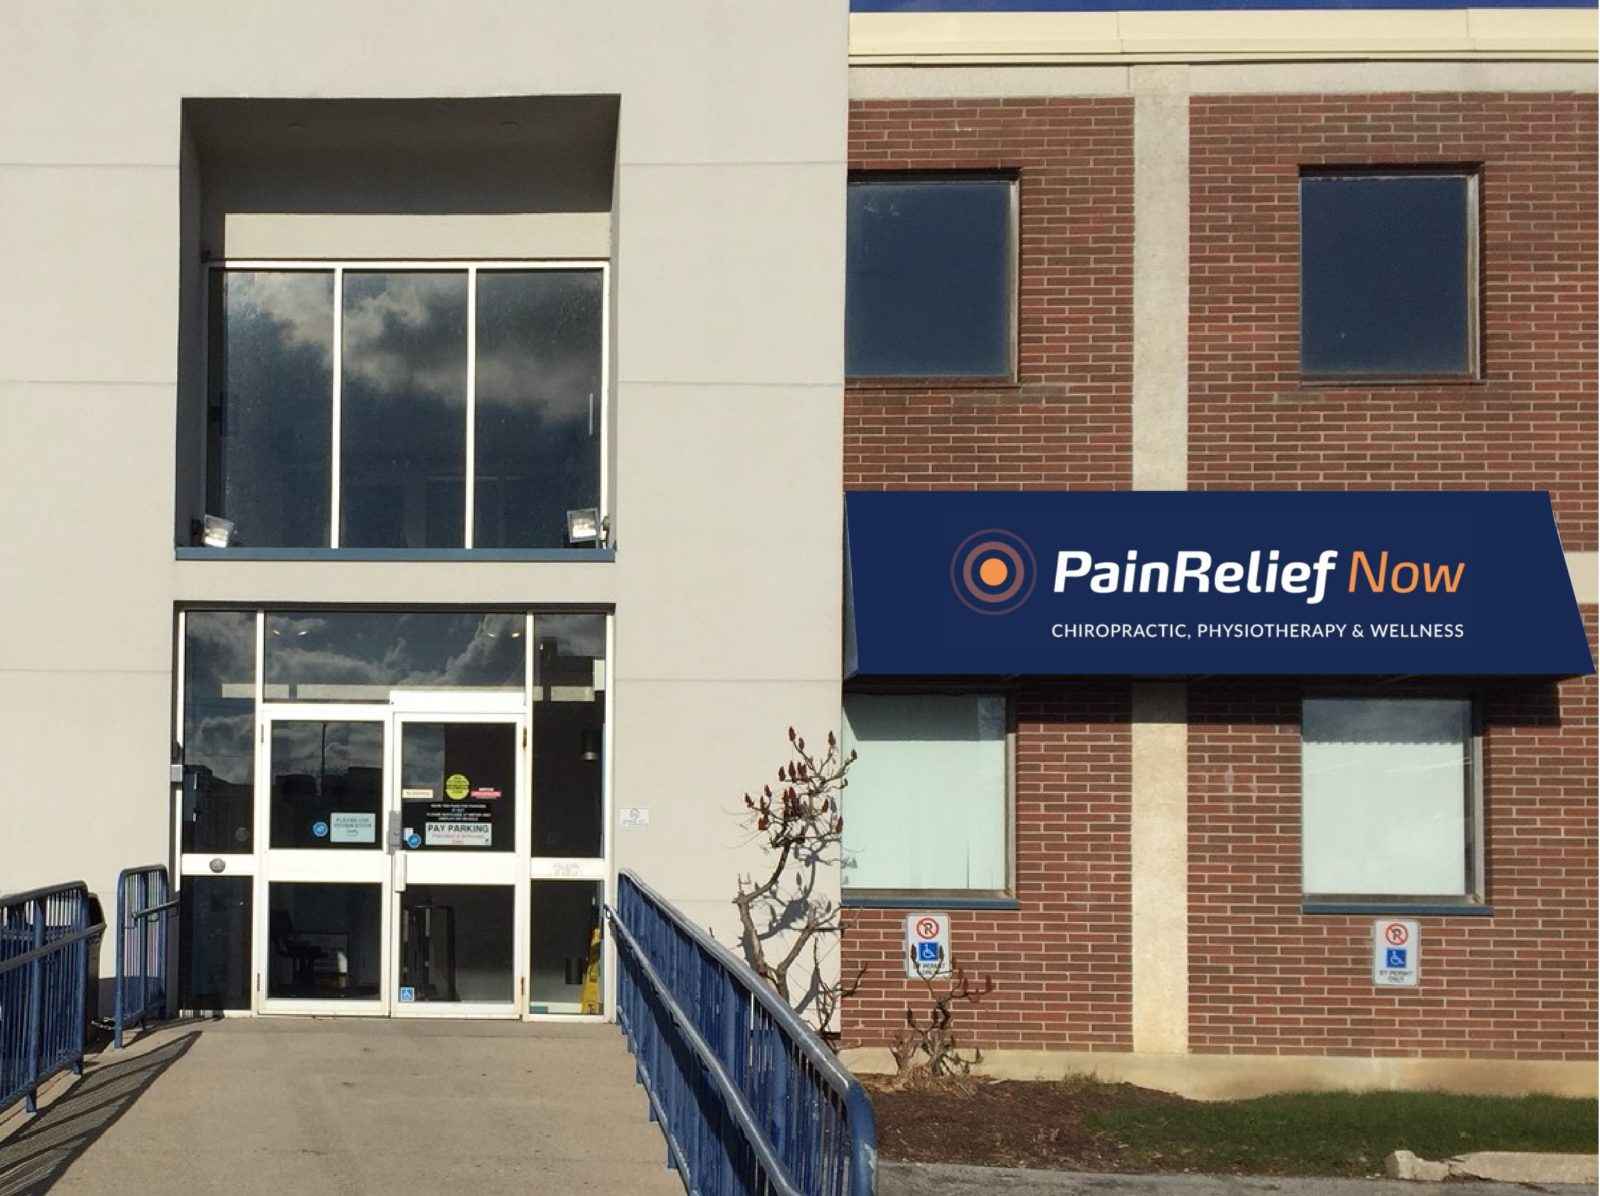 PainRelief Now Storefront